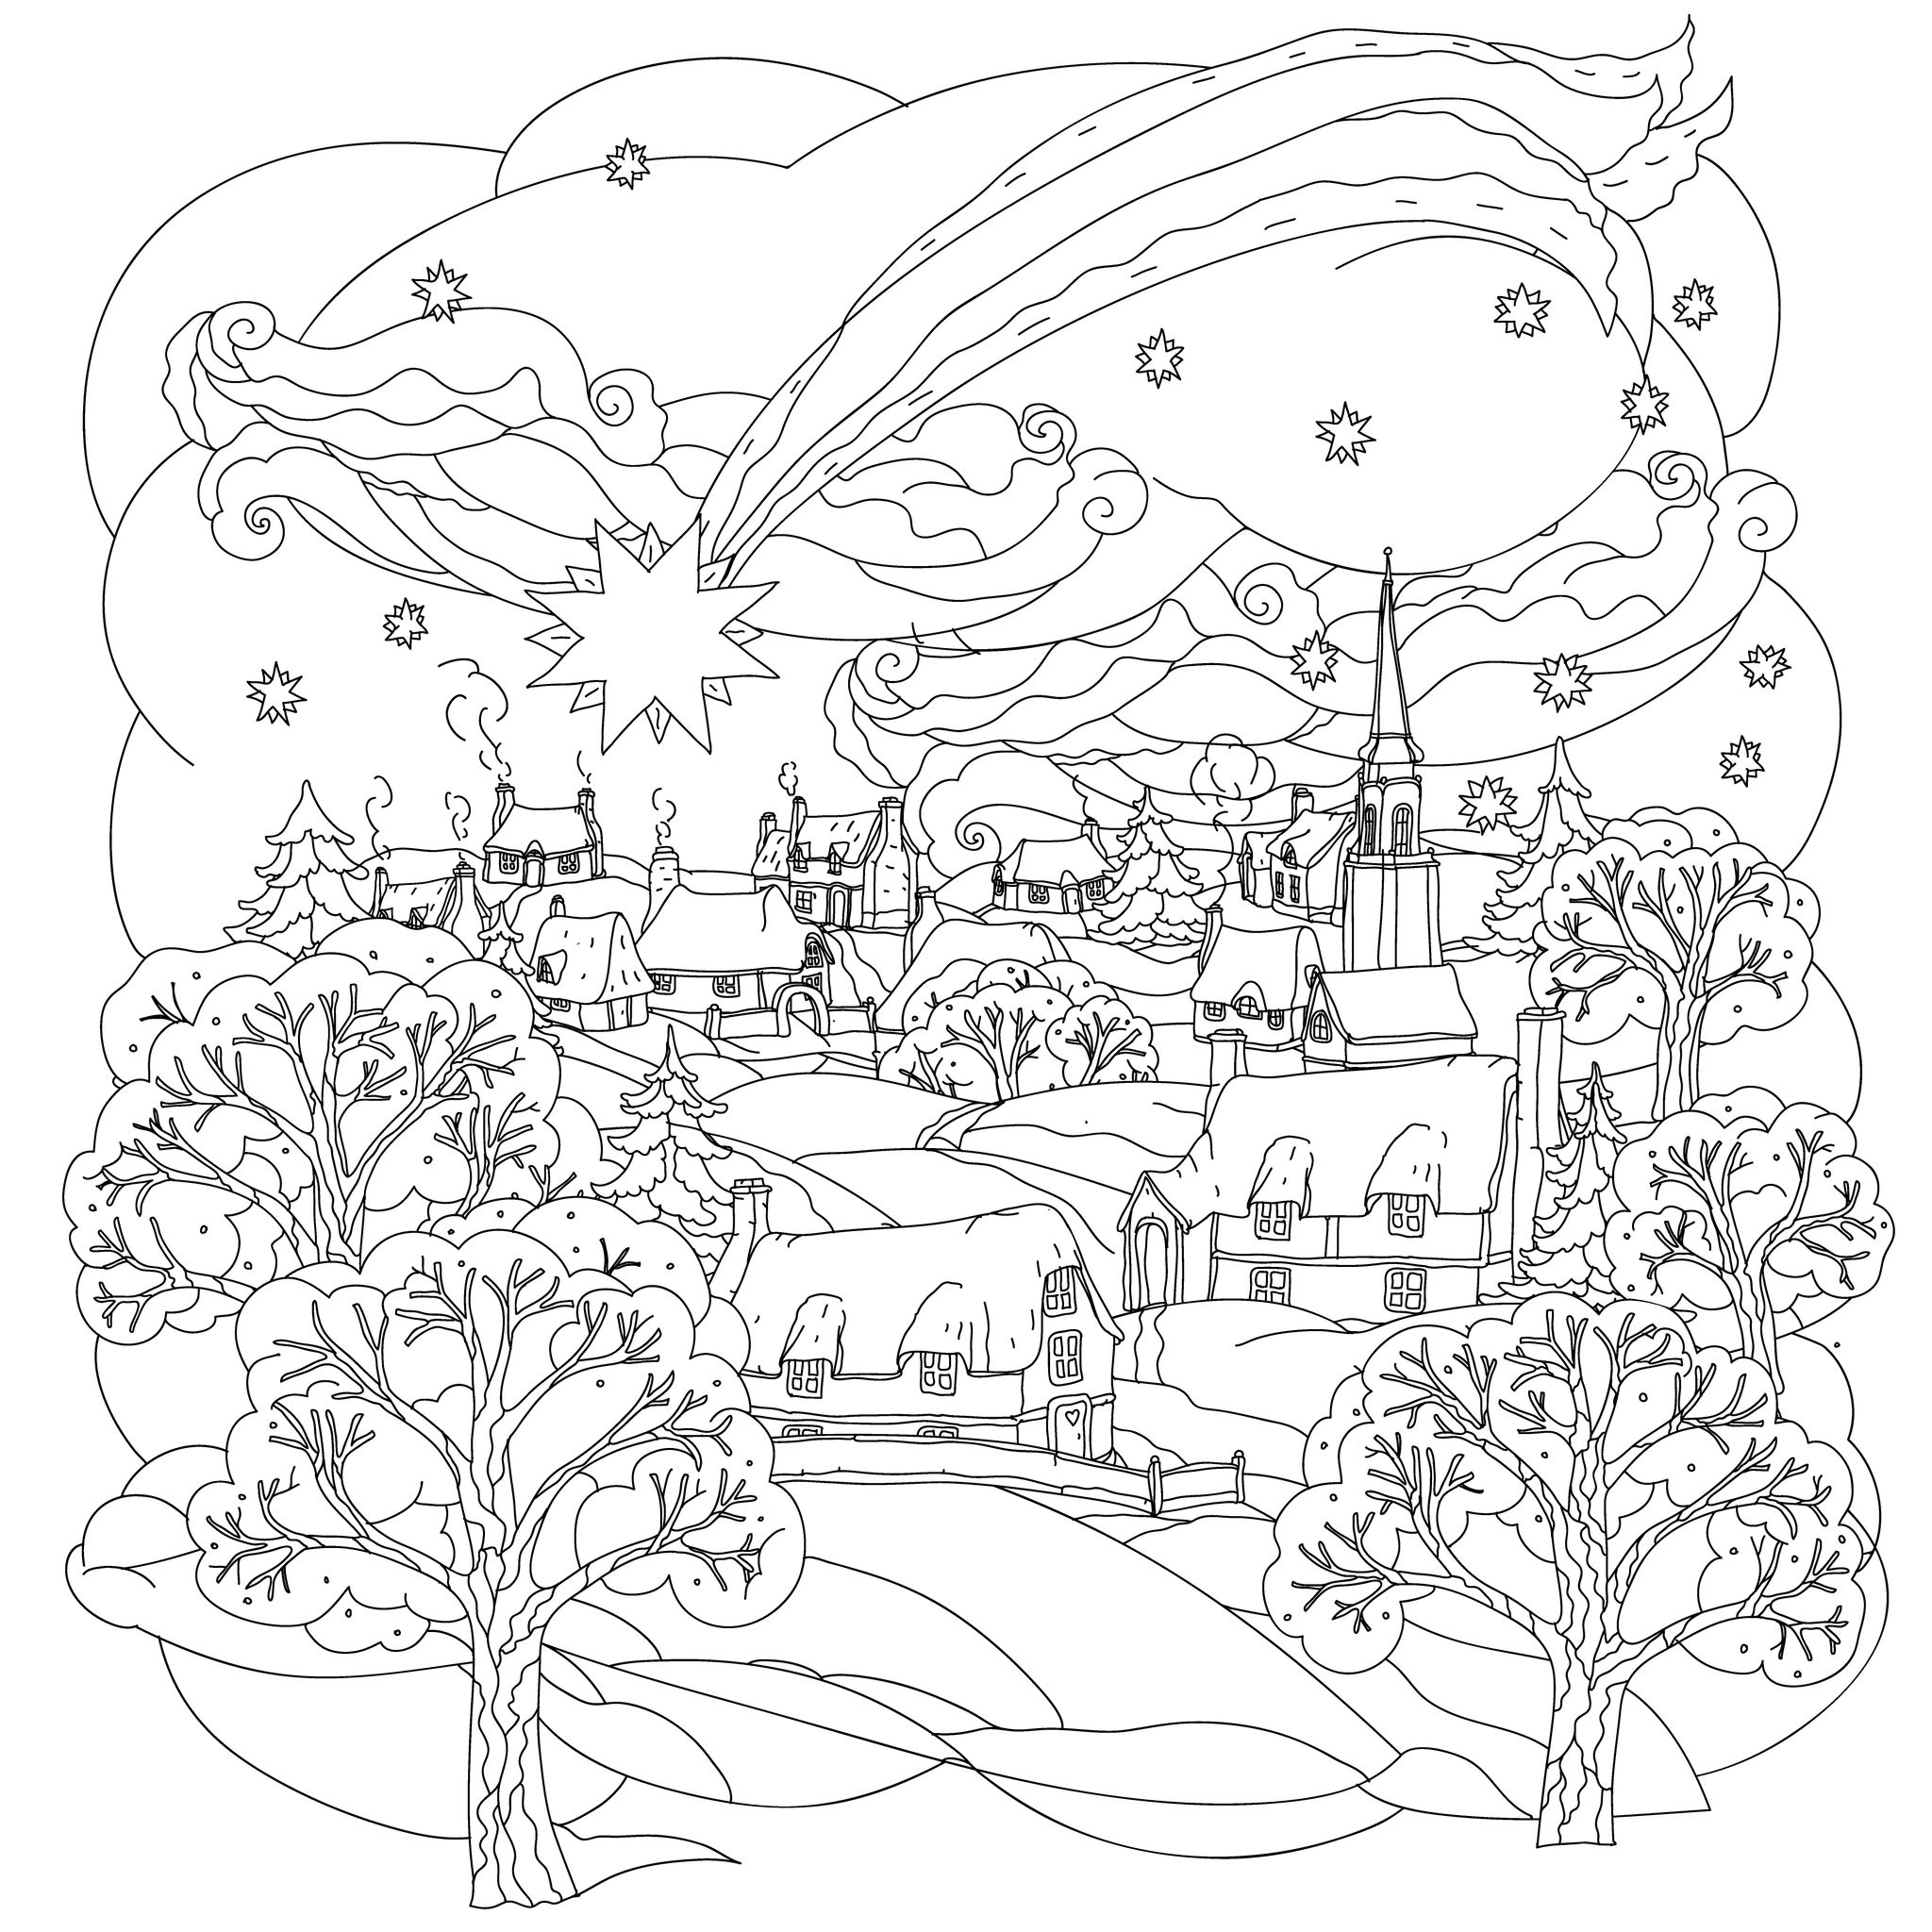 coloring scene christmas coloring pages for adults best coloring pages coloring scene